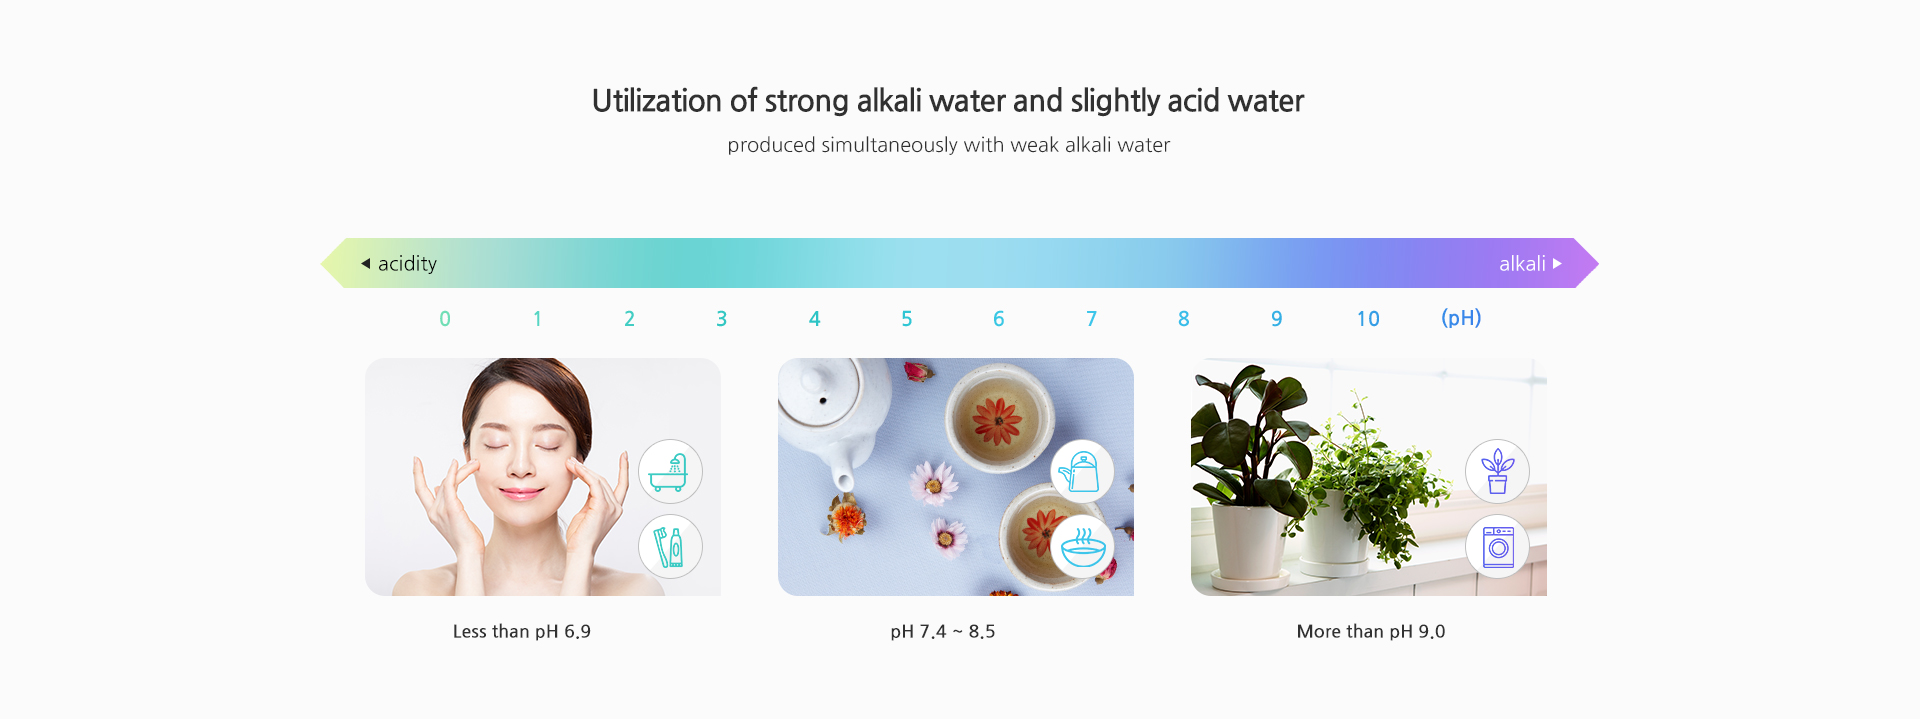 Utilization of strong alkali water and slightly acid water,produced simultaneously with weak alkali water